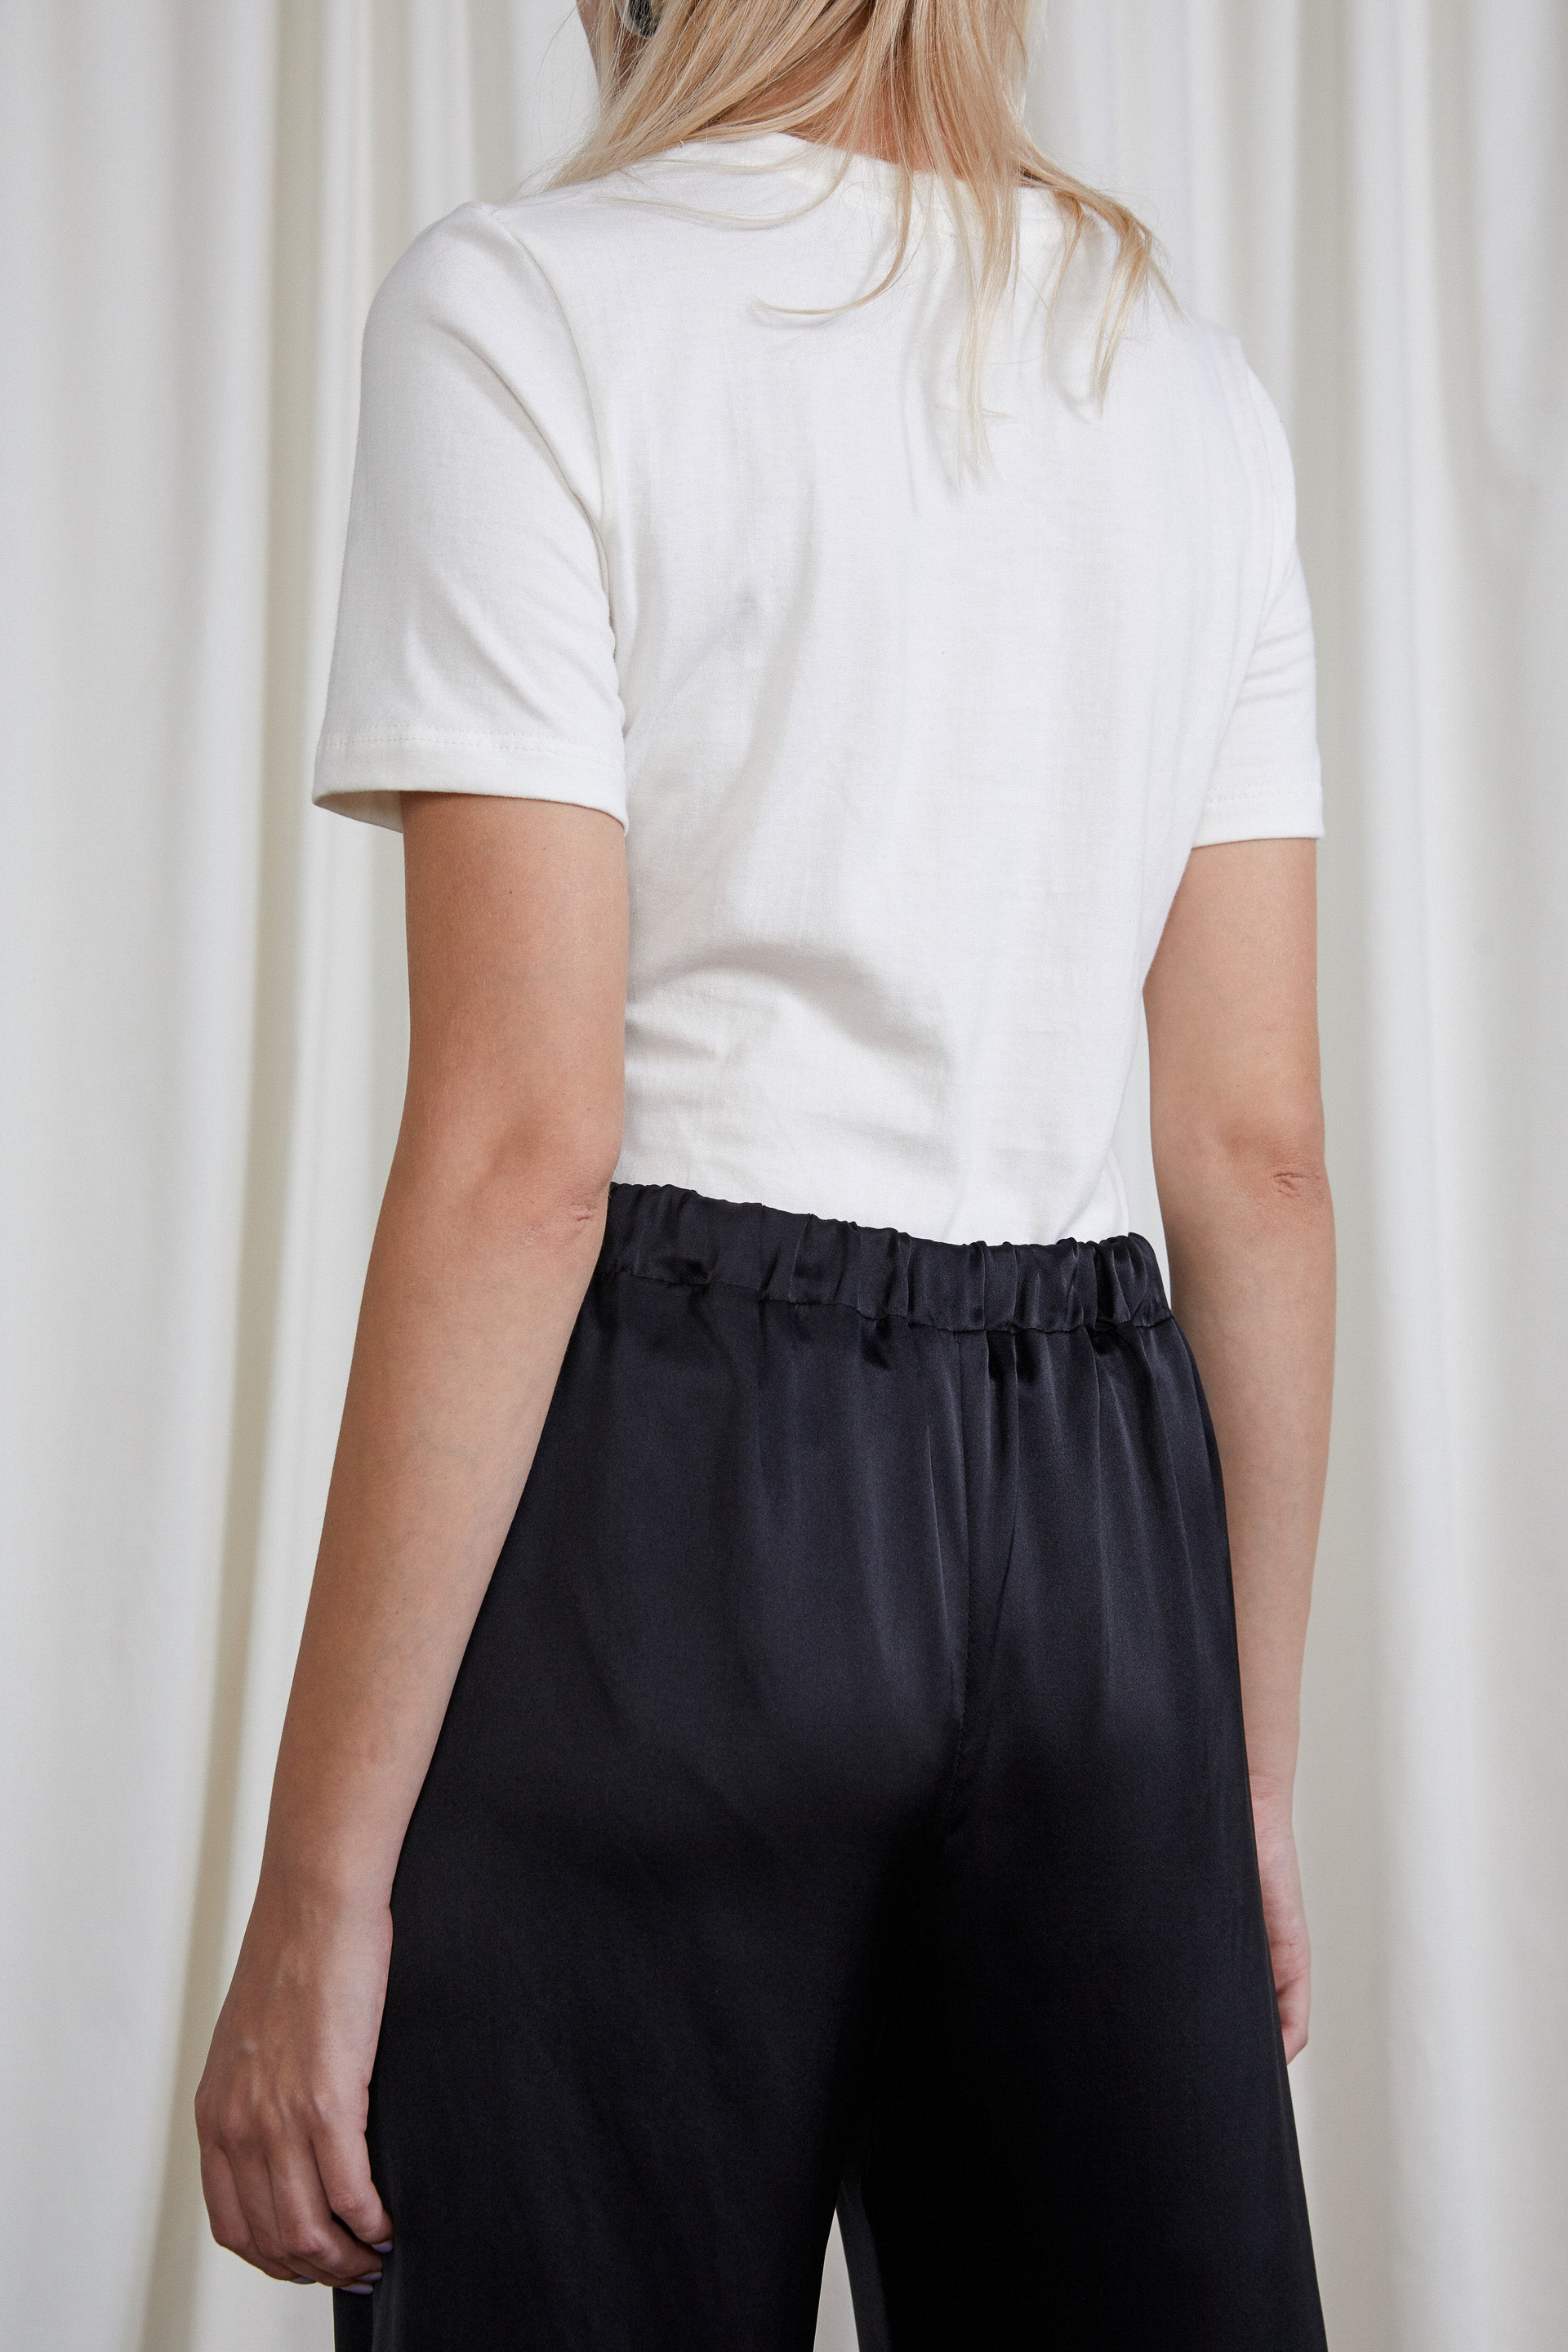 Eleanor Pant - Onyx Silk Satin